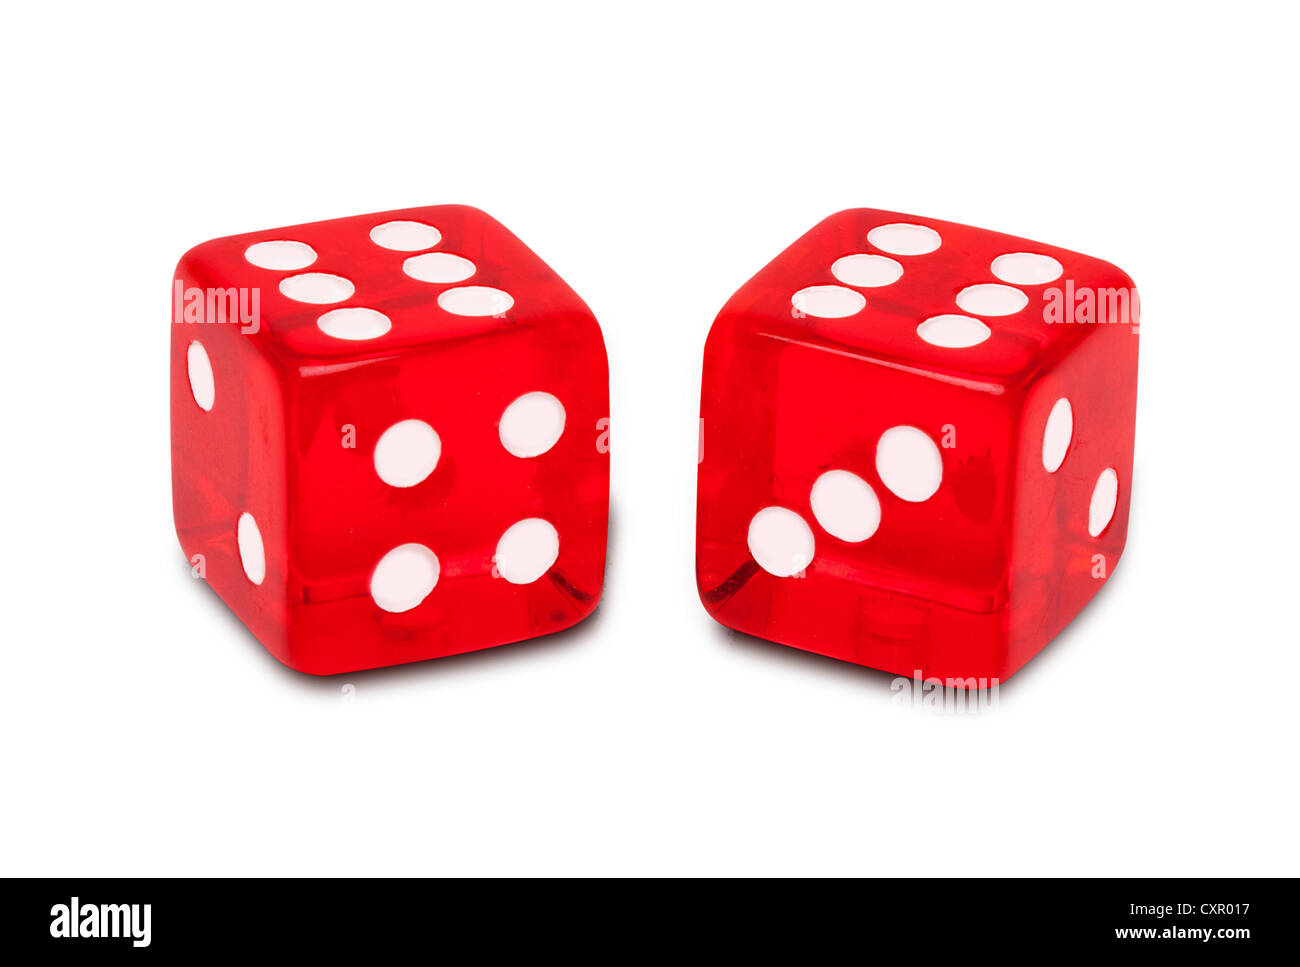 Two red dice - Stock Image